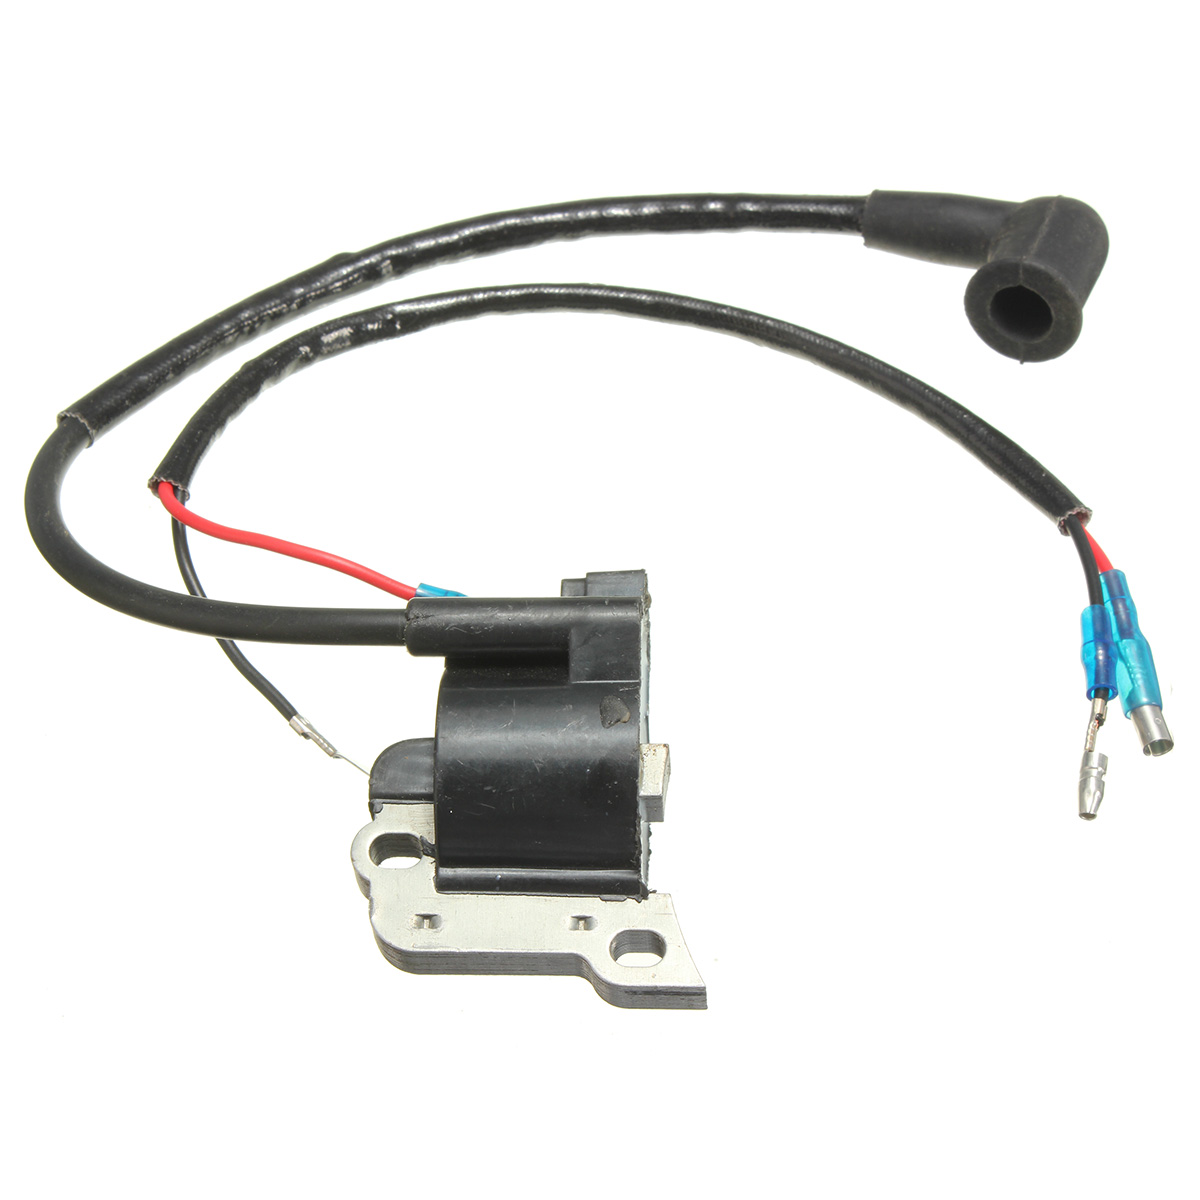 цена на New Ignition Coil Suitable for 4-Stroke Engine Strimmer Brush Cutter Brushcutter